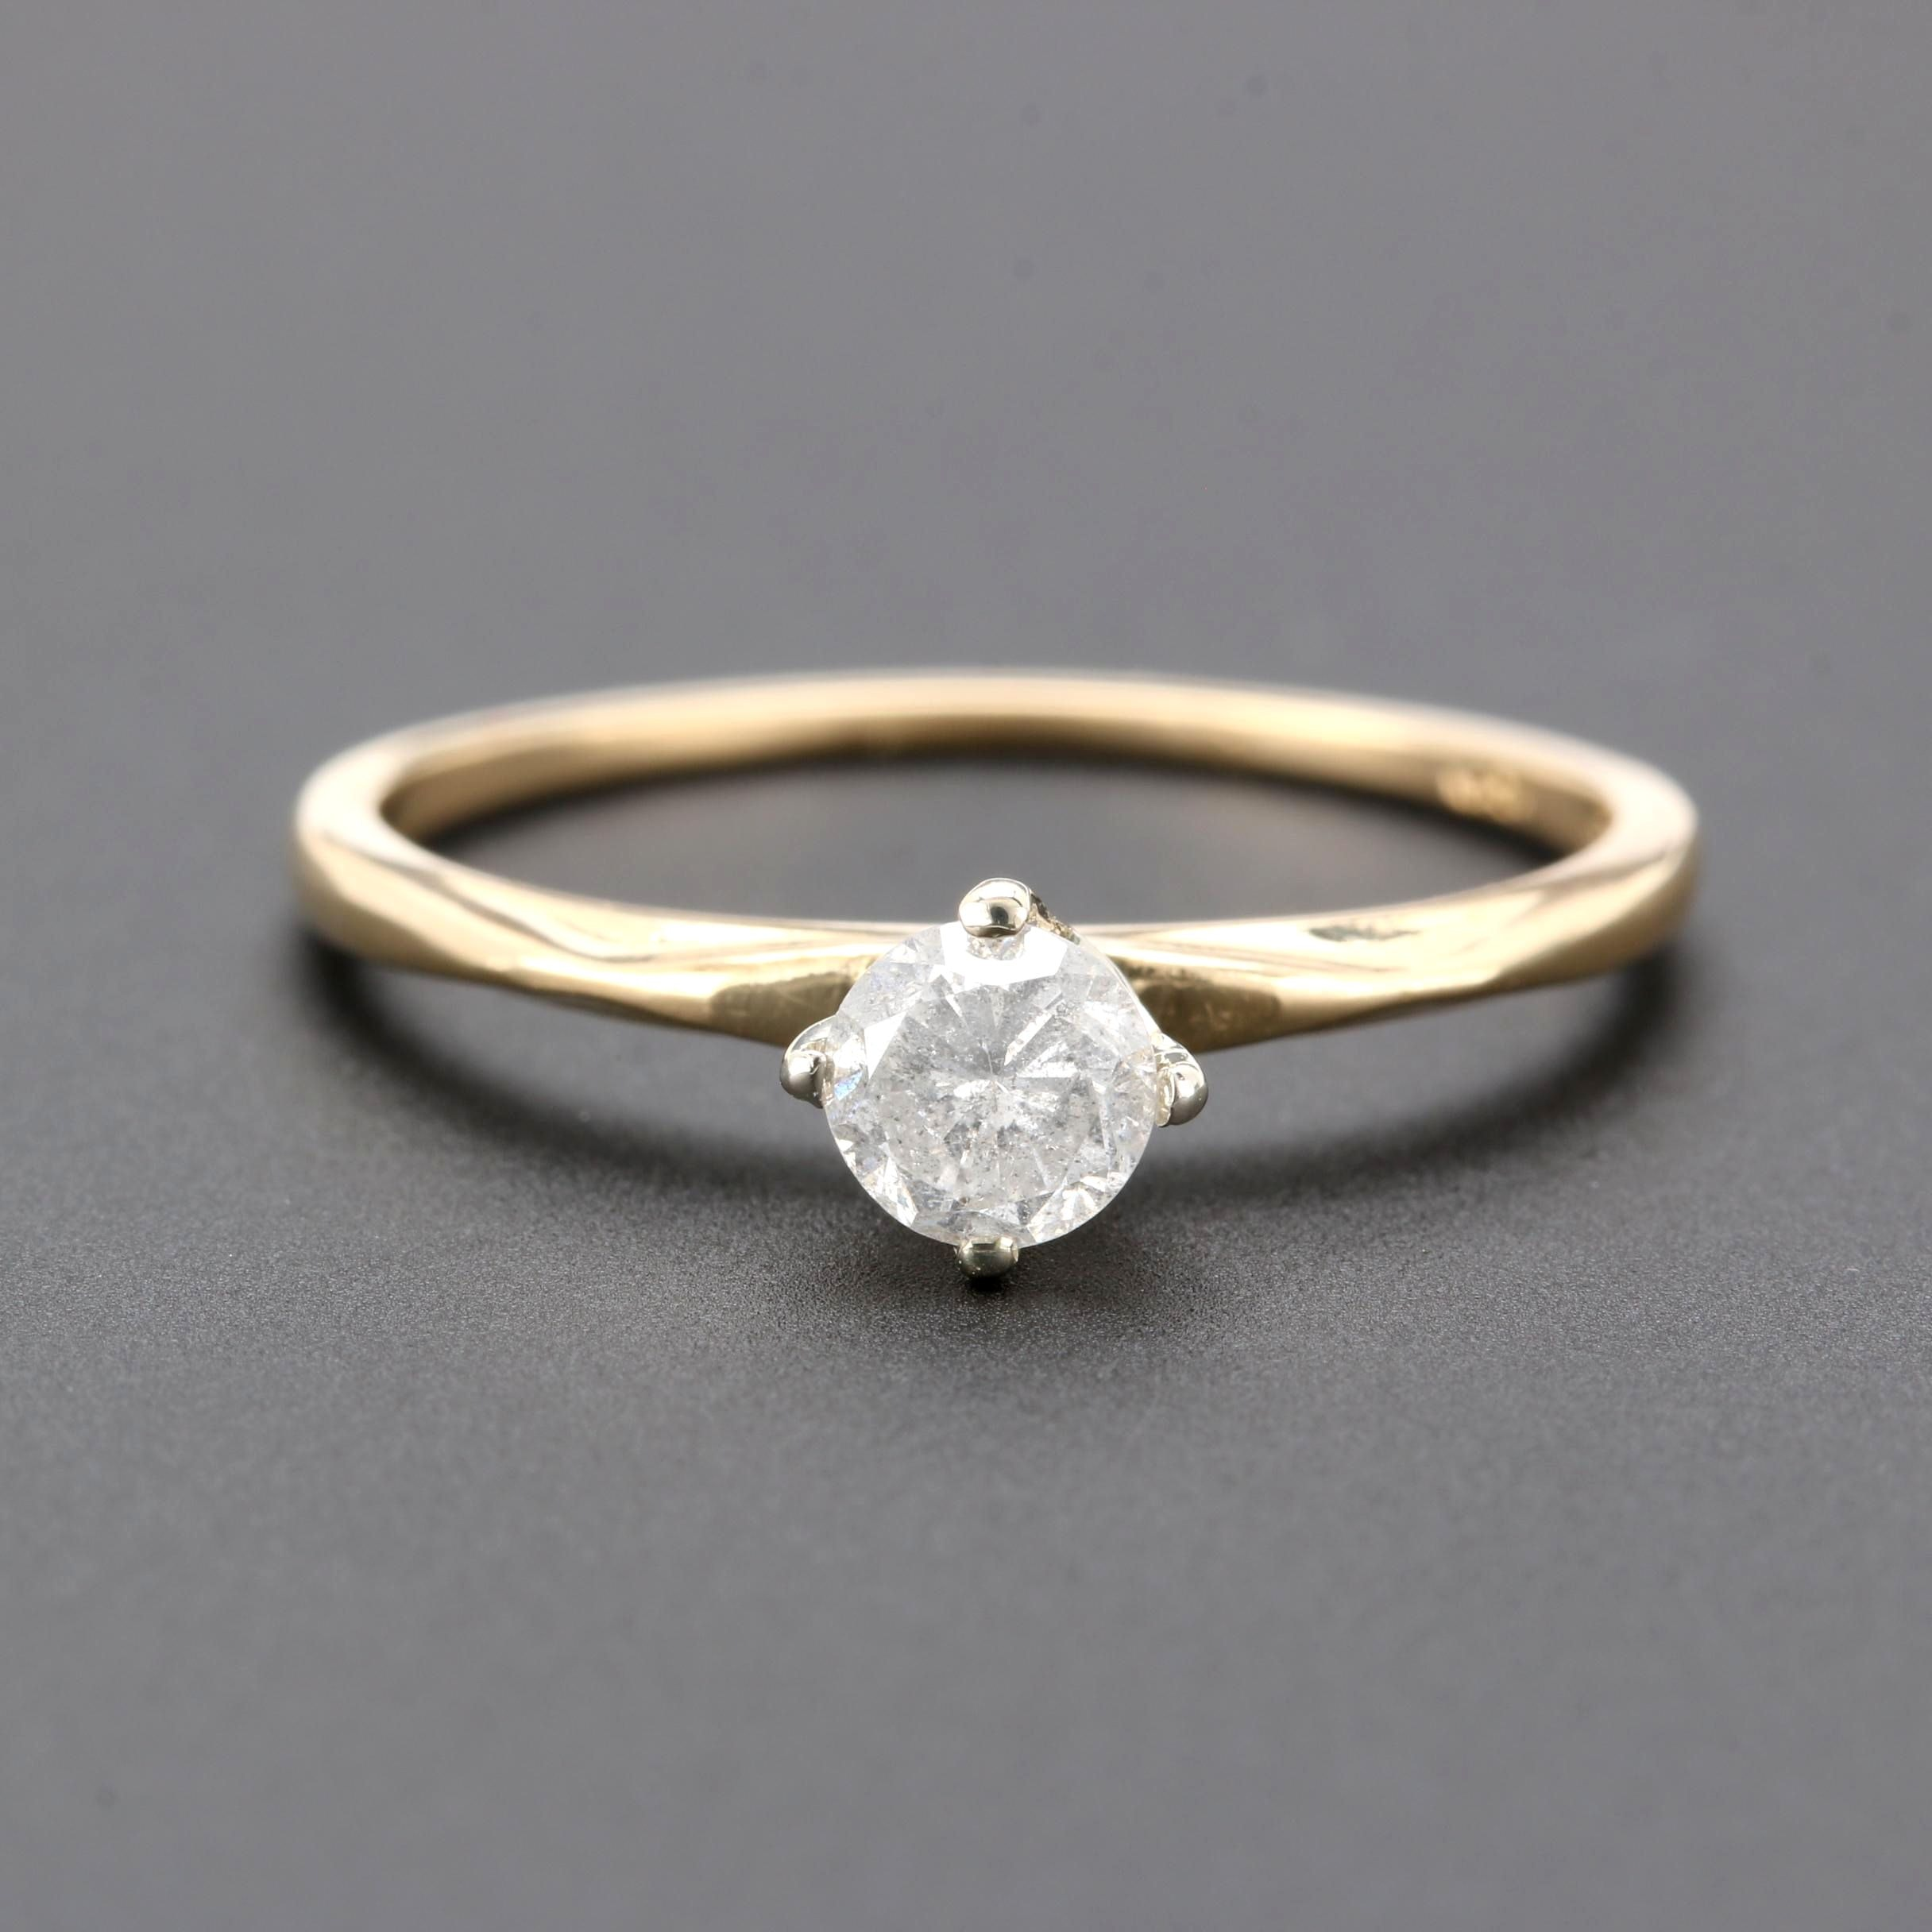 Orange Blossom 18K Yellow Gold Diamond Solitaire Ring